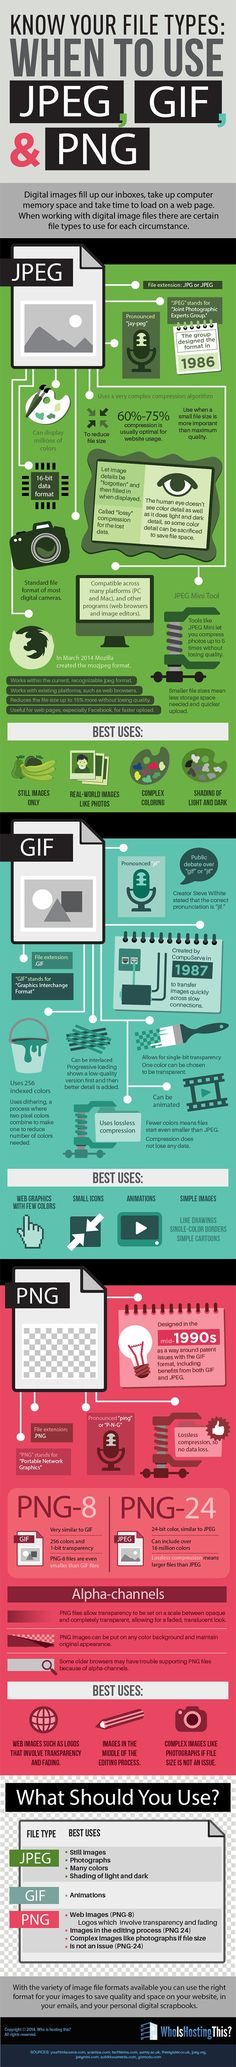 Image File Types How to Maintain Image Quality on Your Website #Infographic